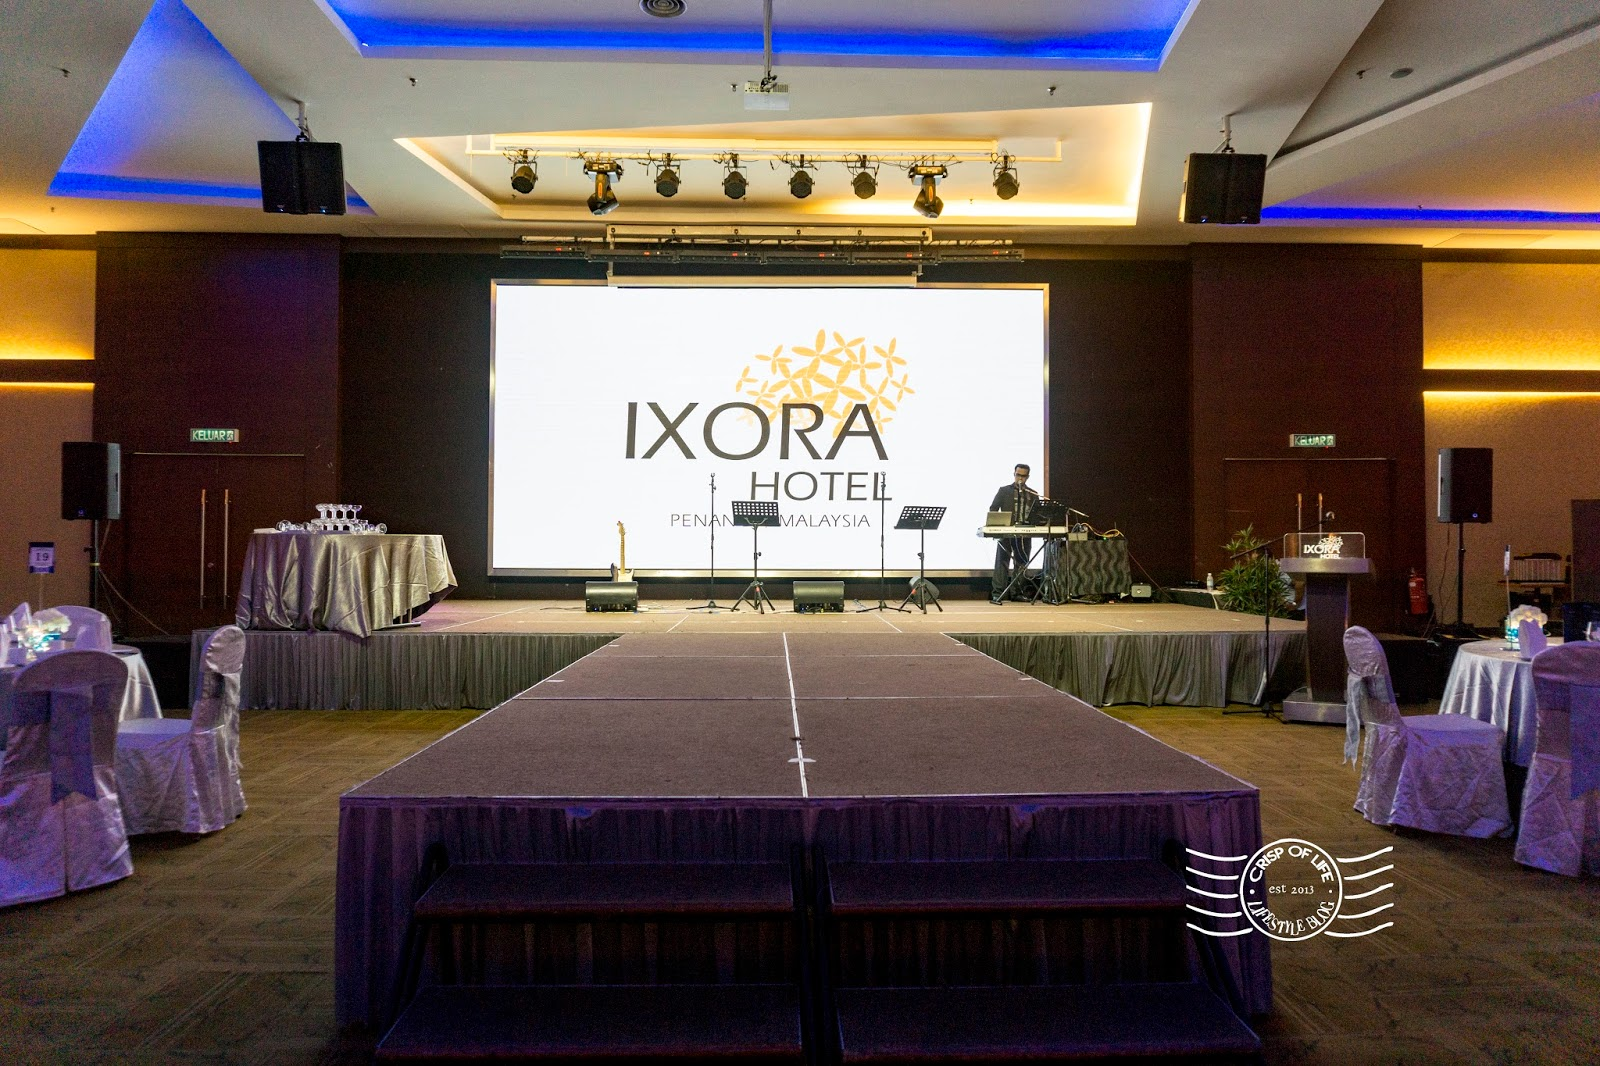 Sparks with Ixora II Corporate Appreciation Night @ Ixora Hotel, Penang